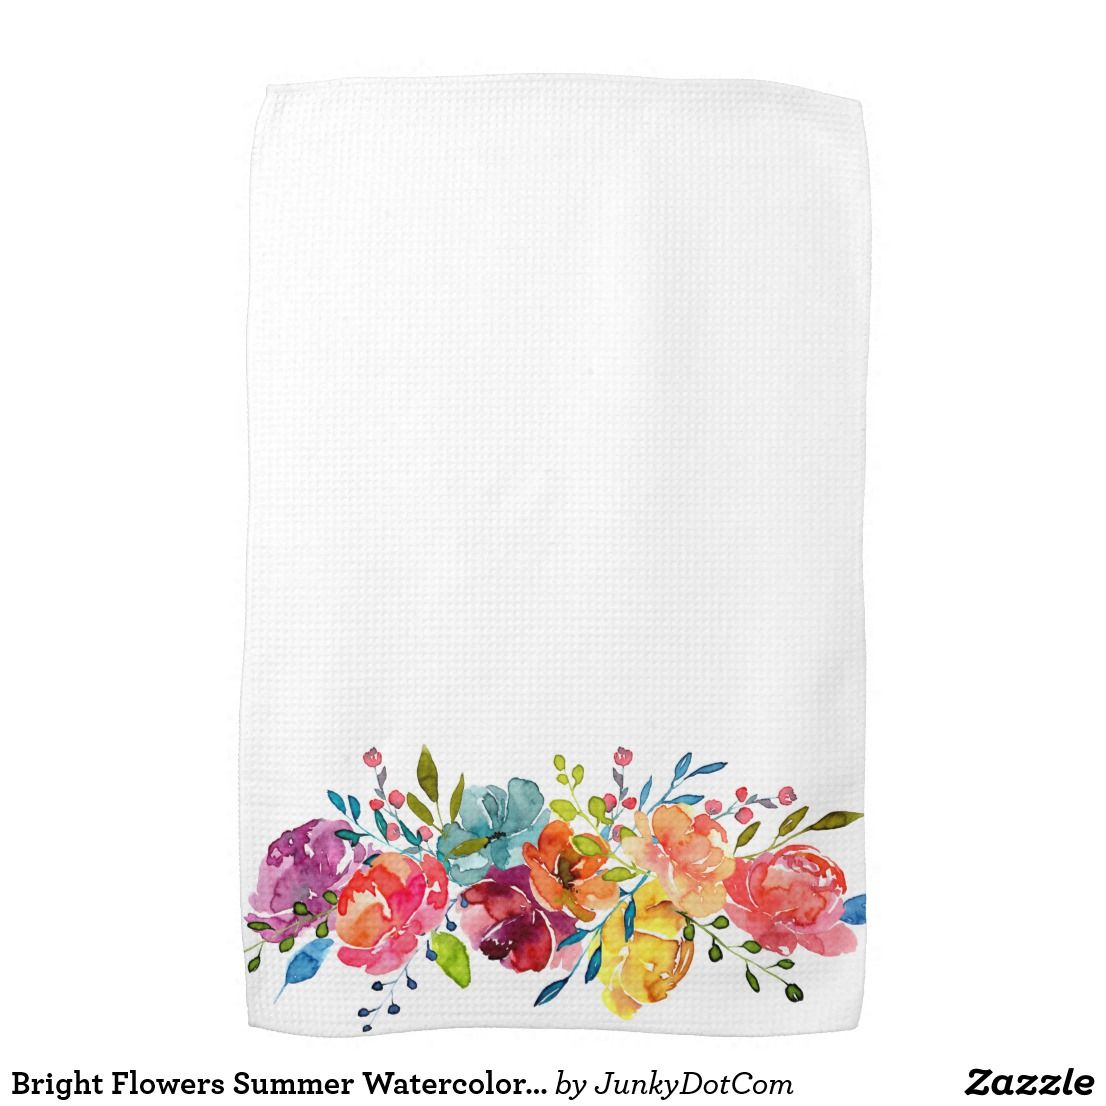 Bright Flowers Summer Watercolor Peonies Towel Zazzle Com